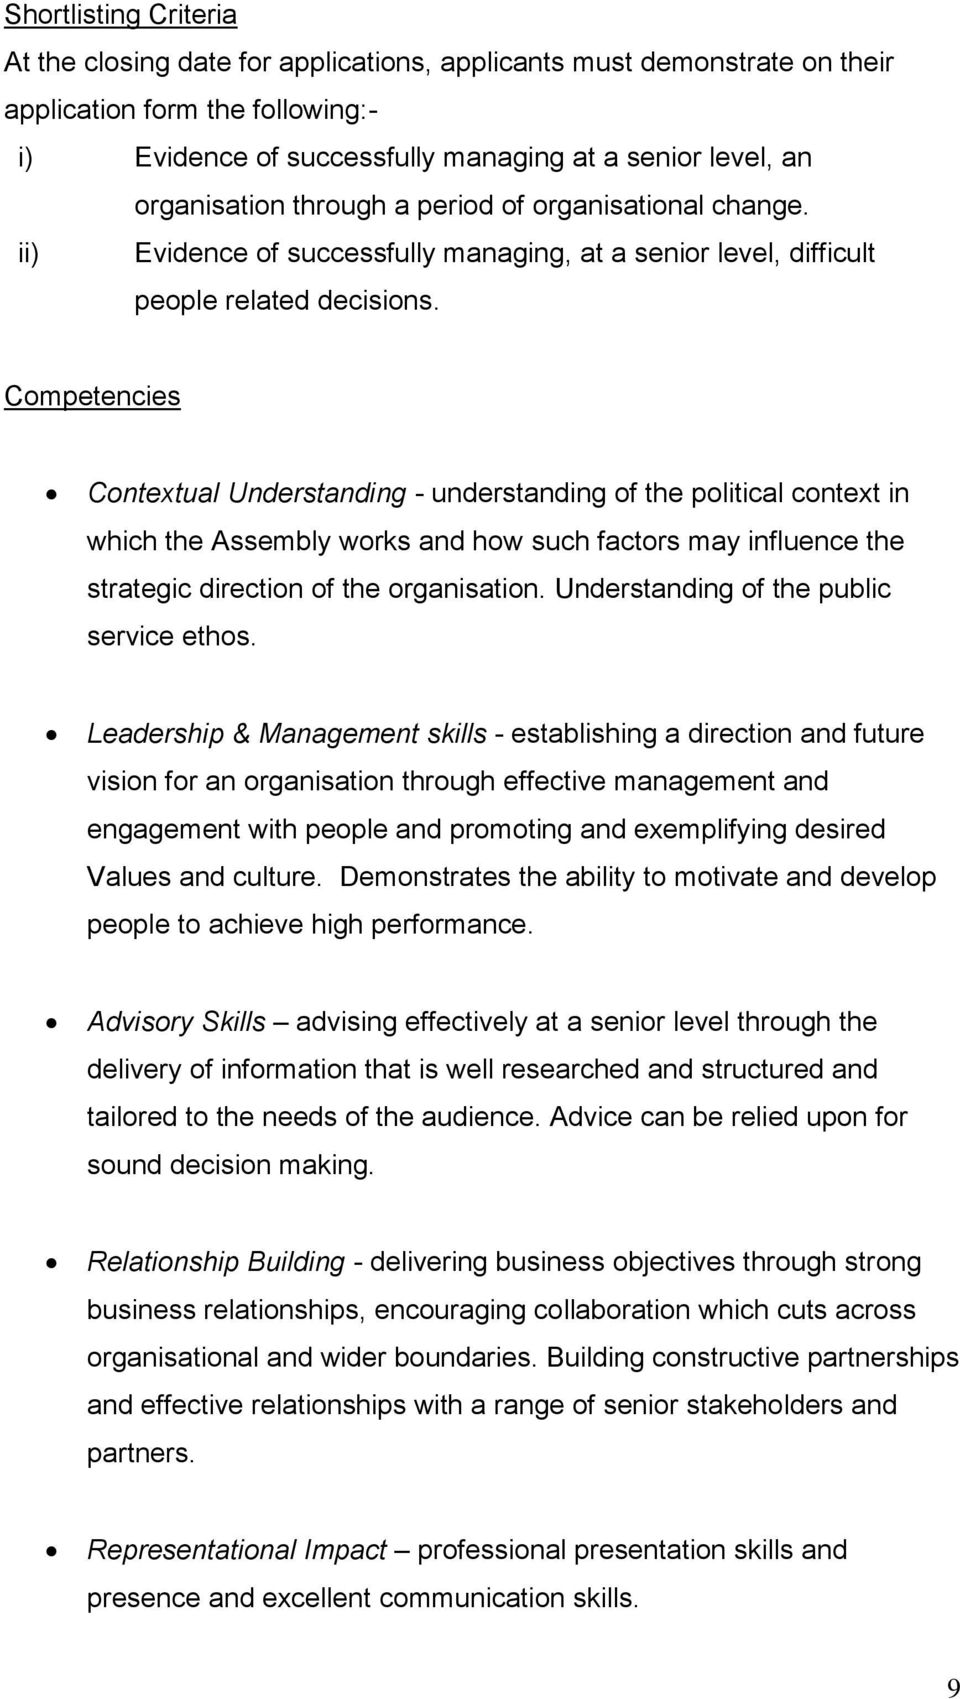 Competencies Contextual Understanding - understanding of the political context in which the Assembly works and how such factors may influence the strategic direction of the organisation.